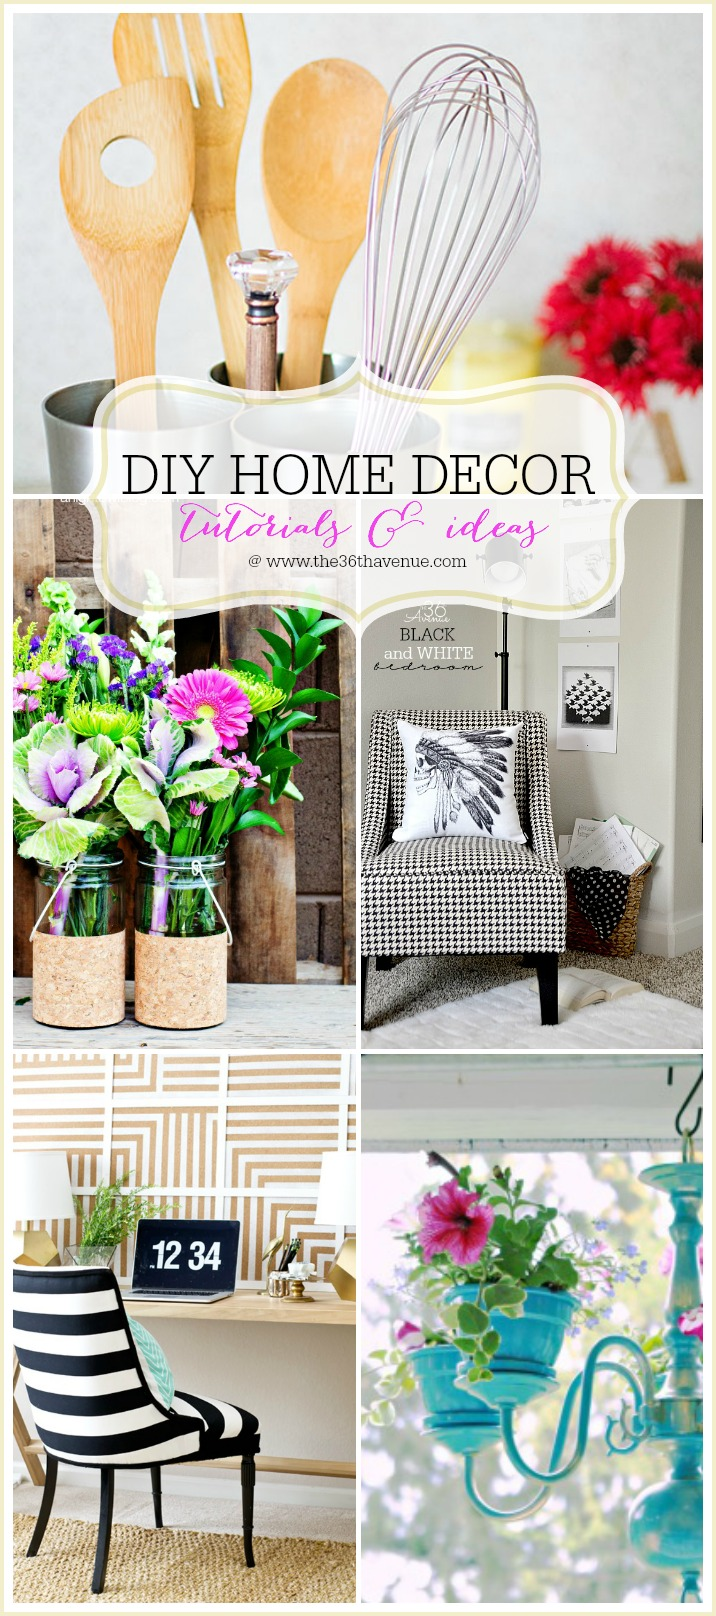 Home Decor DIY Projects that must be seen! the36thavenue.com